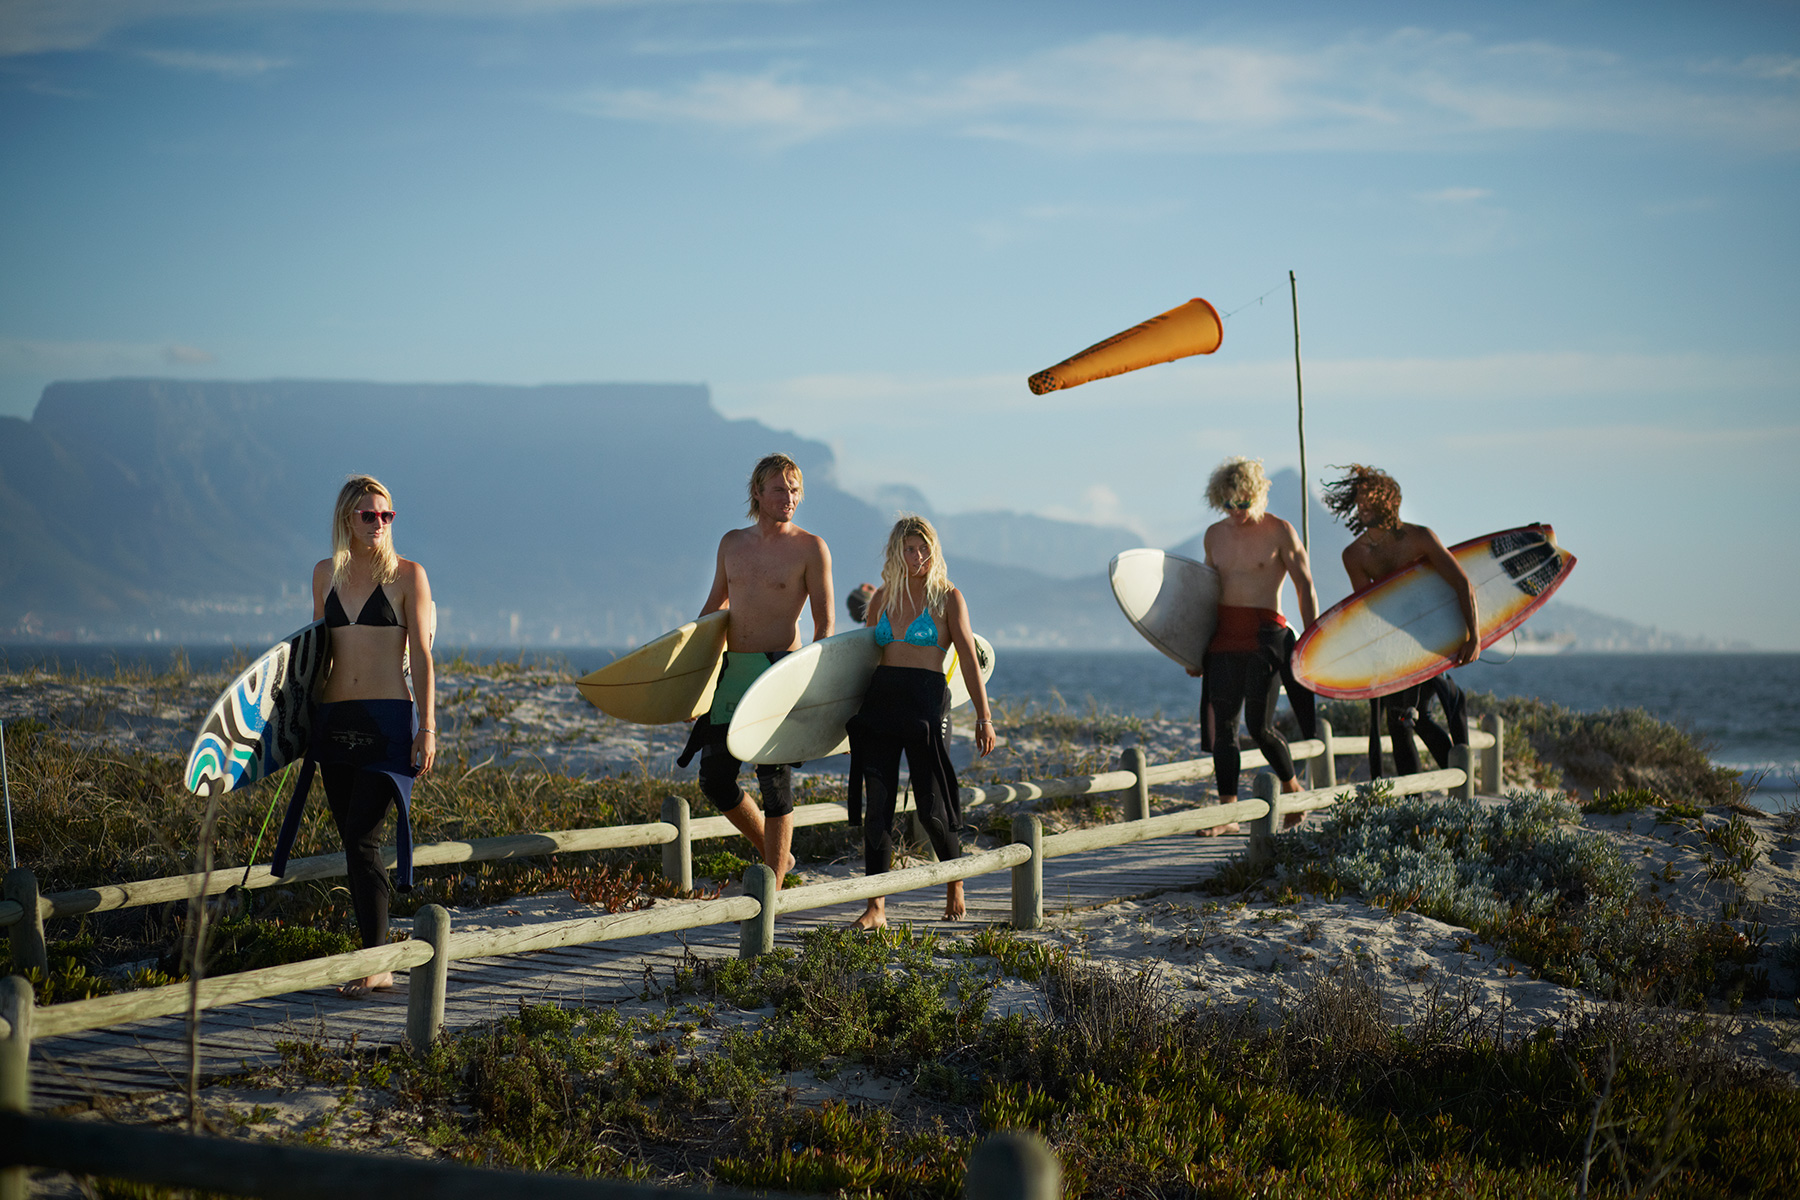 Group of surfers walking with surfboards